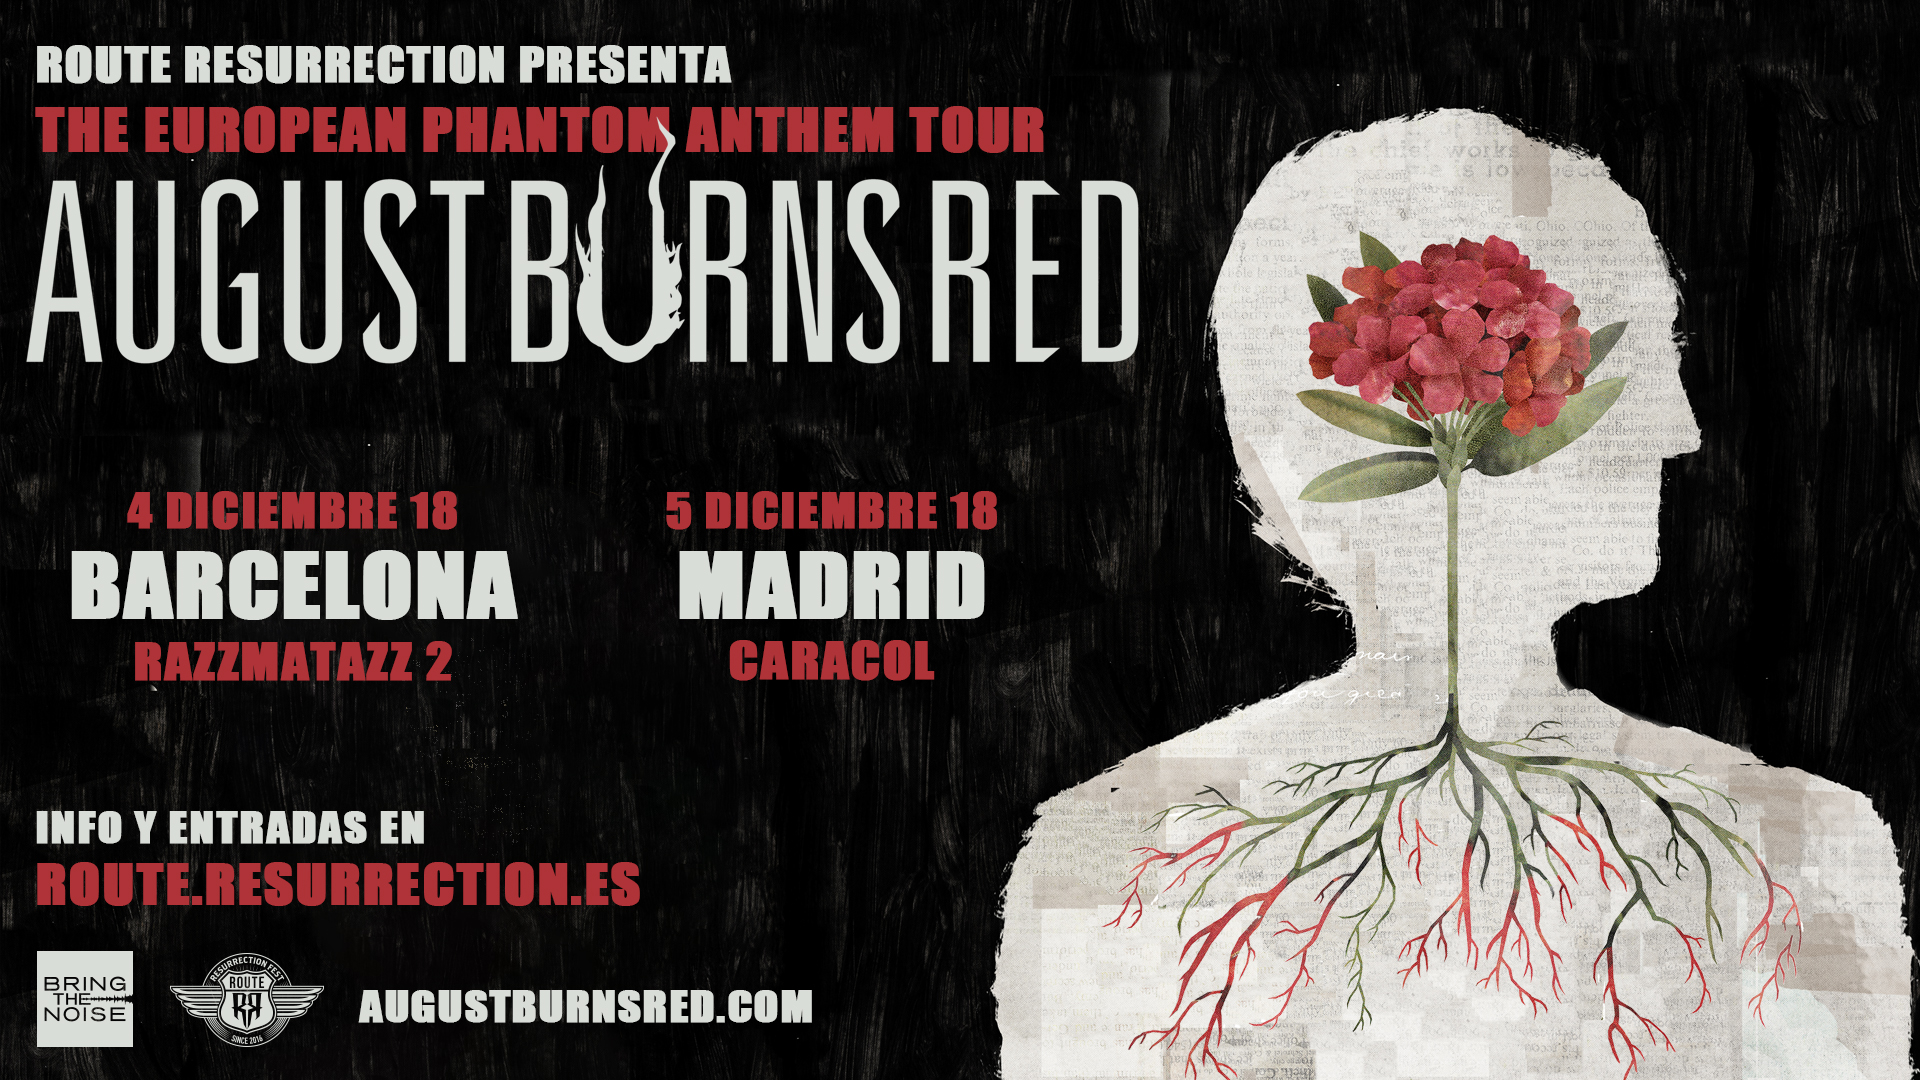 Route-Resurrection-2018-August-Burns-Red-Event